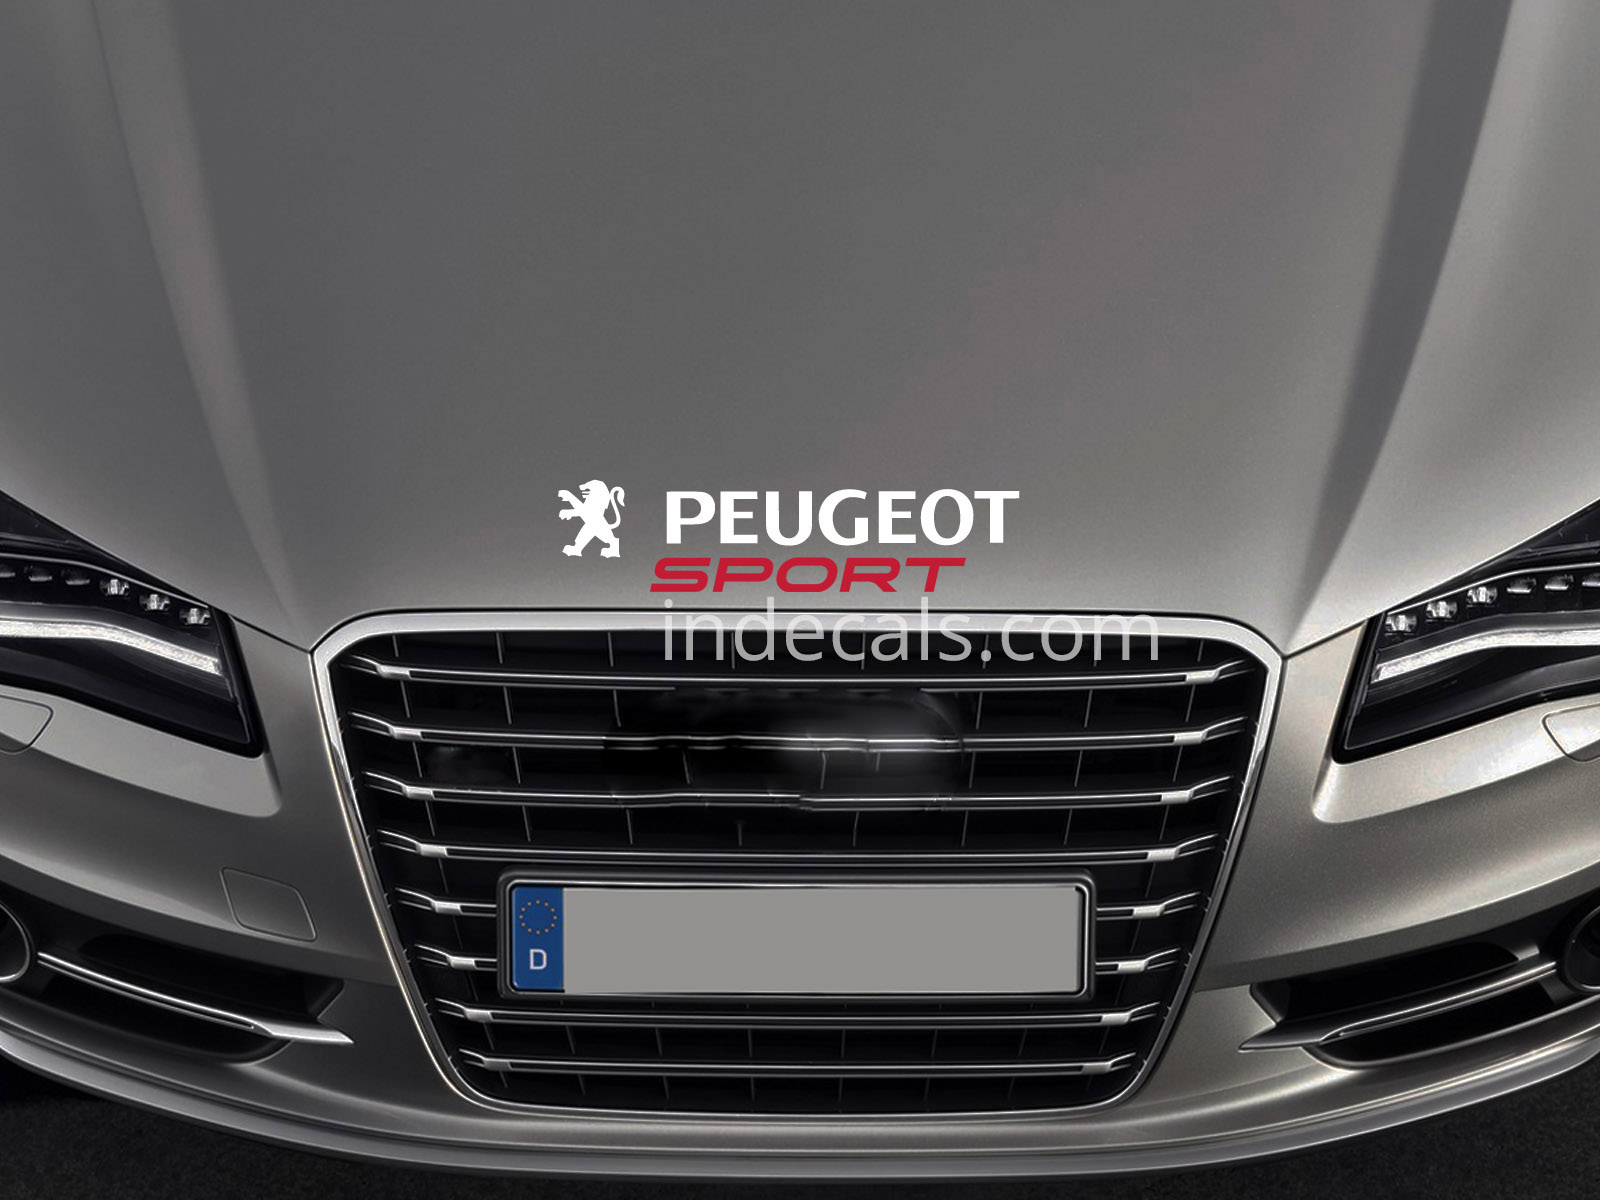 1 x Peugeot Sport Sticker for Bonnet - White & Red